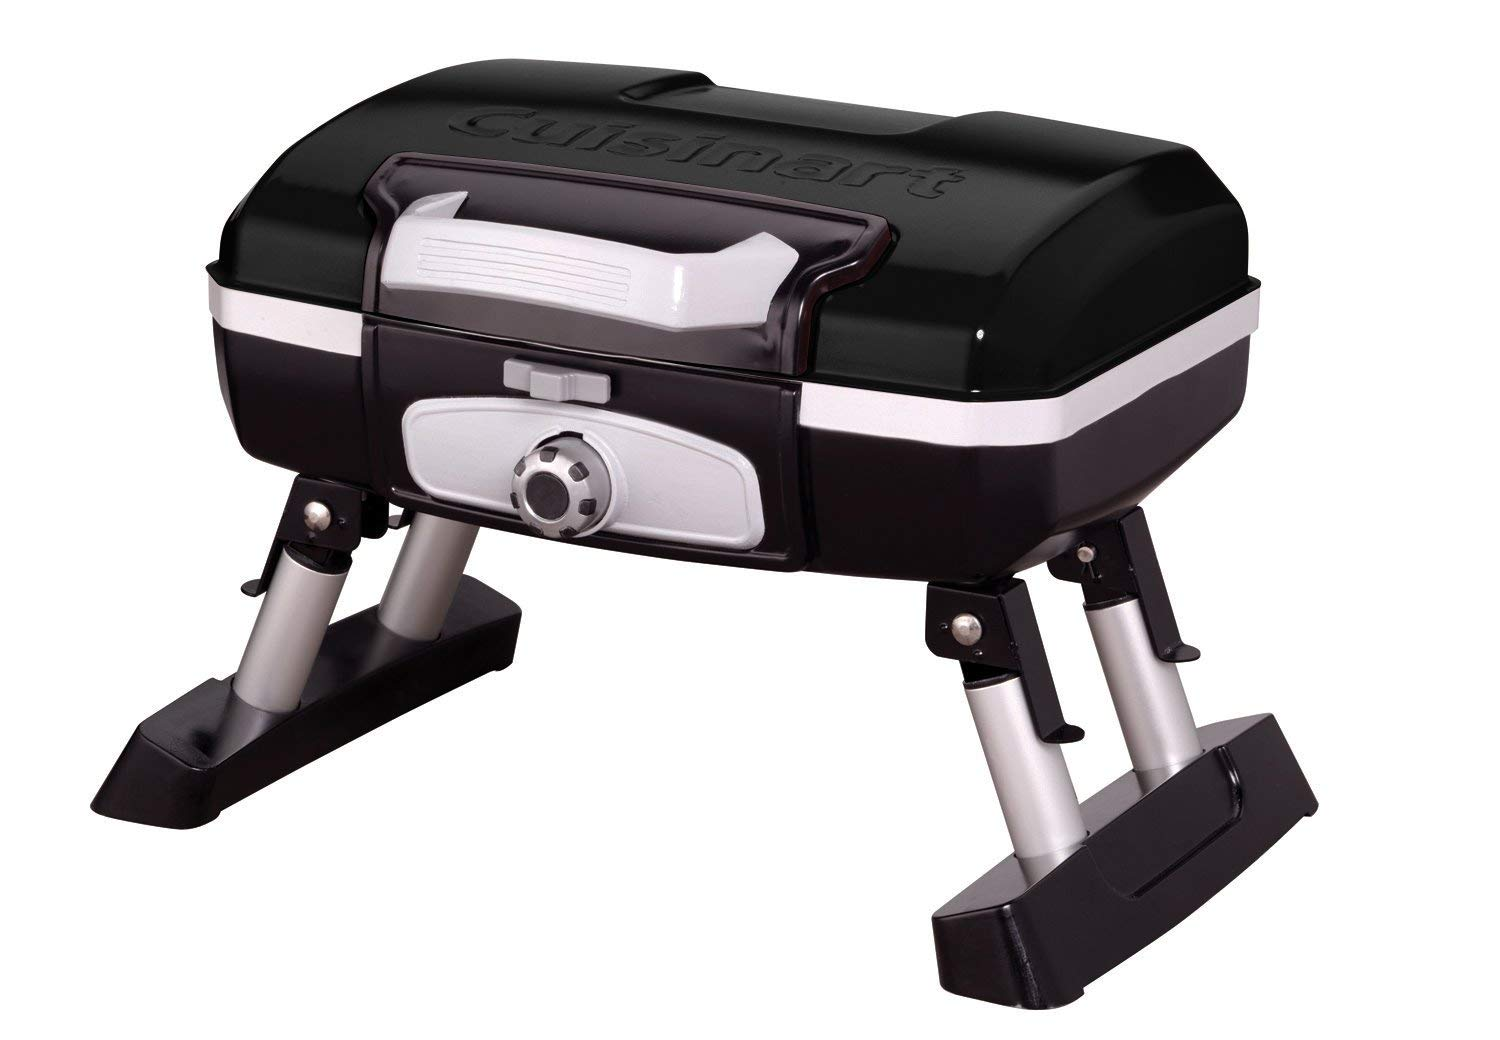 Gas - grill BBQ Pro Grill. This Petit Gourmet Tabletop Is Great Addition To Any Lawn, Backyard, Patio Or Gazebo. The Best Choice For Cooking Meat Steak On Outdoor Barbecue Or Grilling Party.